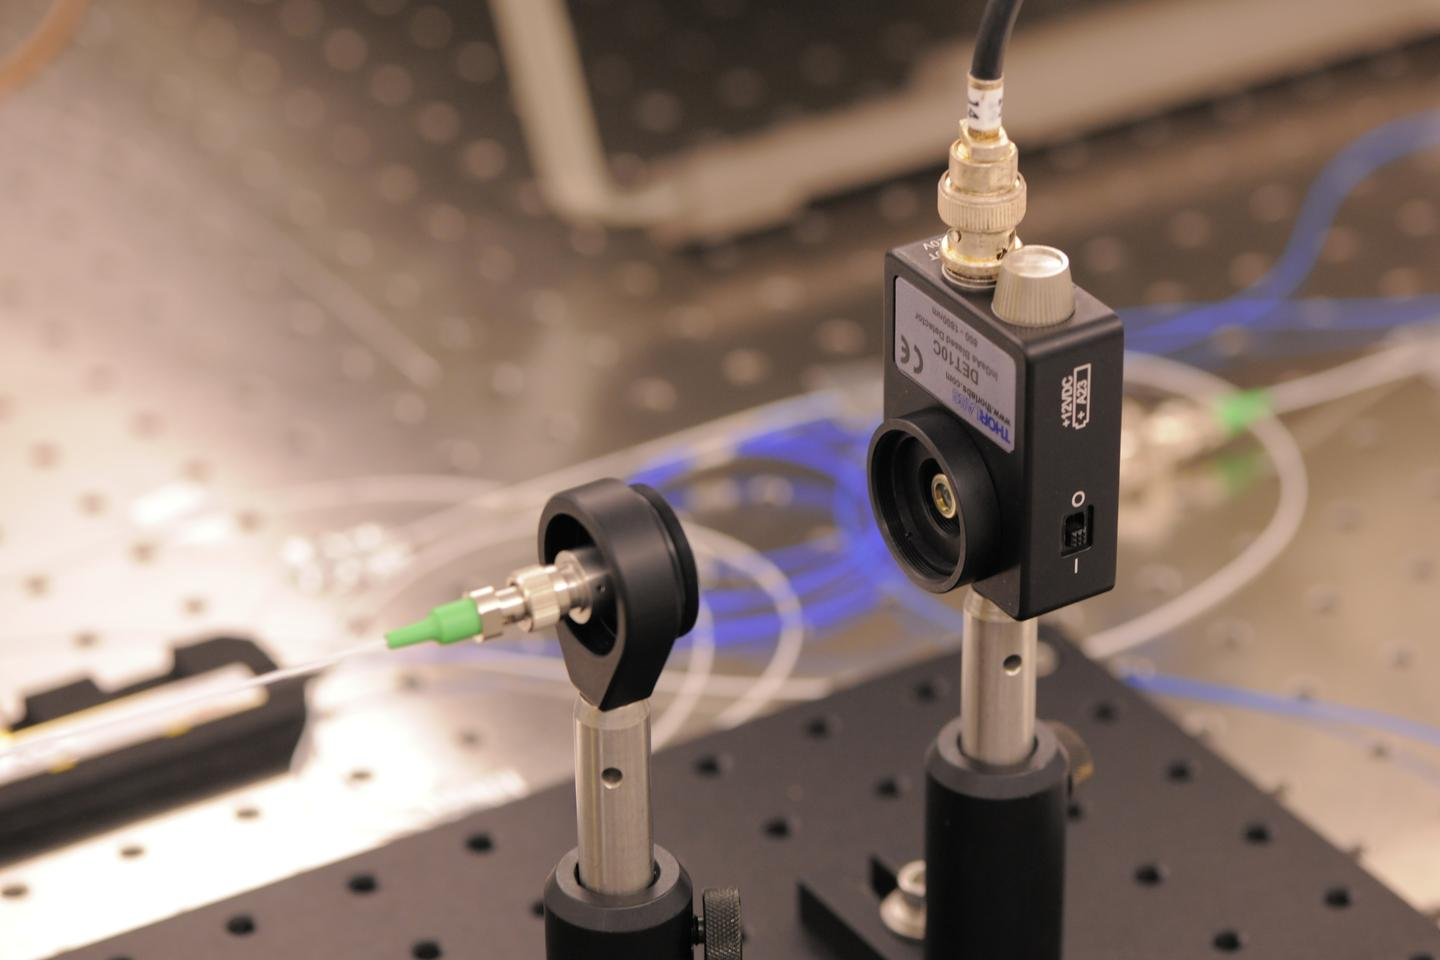 Broadband laser system used to detect gravity waves (Photo: NASA/Pat Izzo)